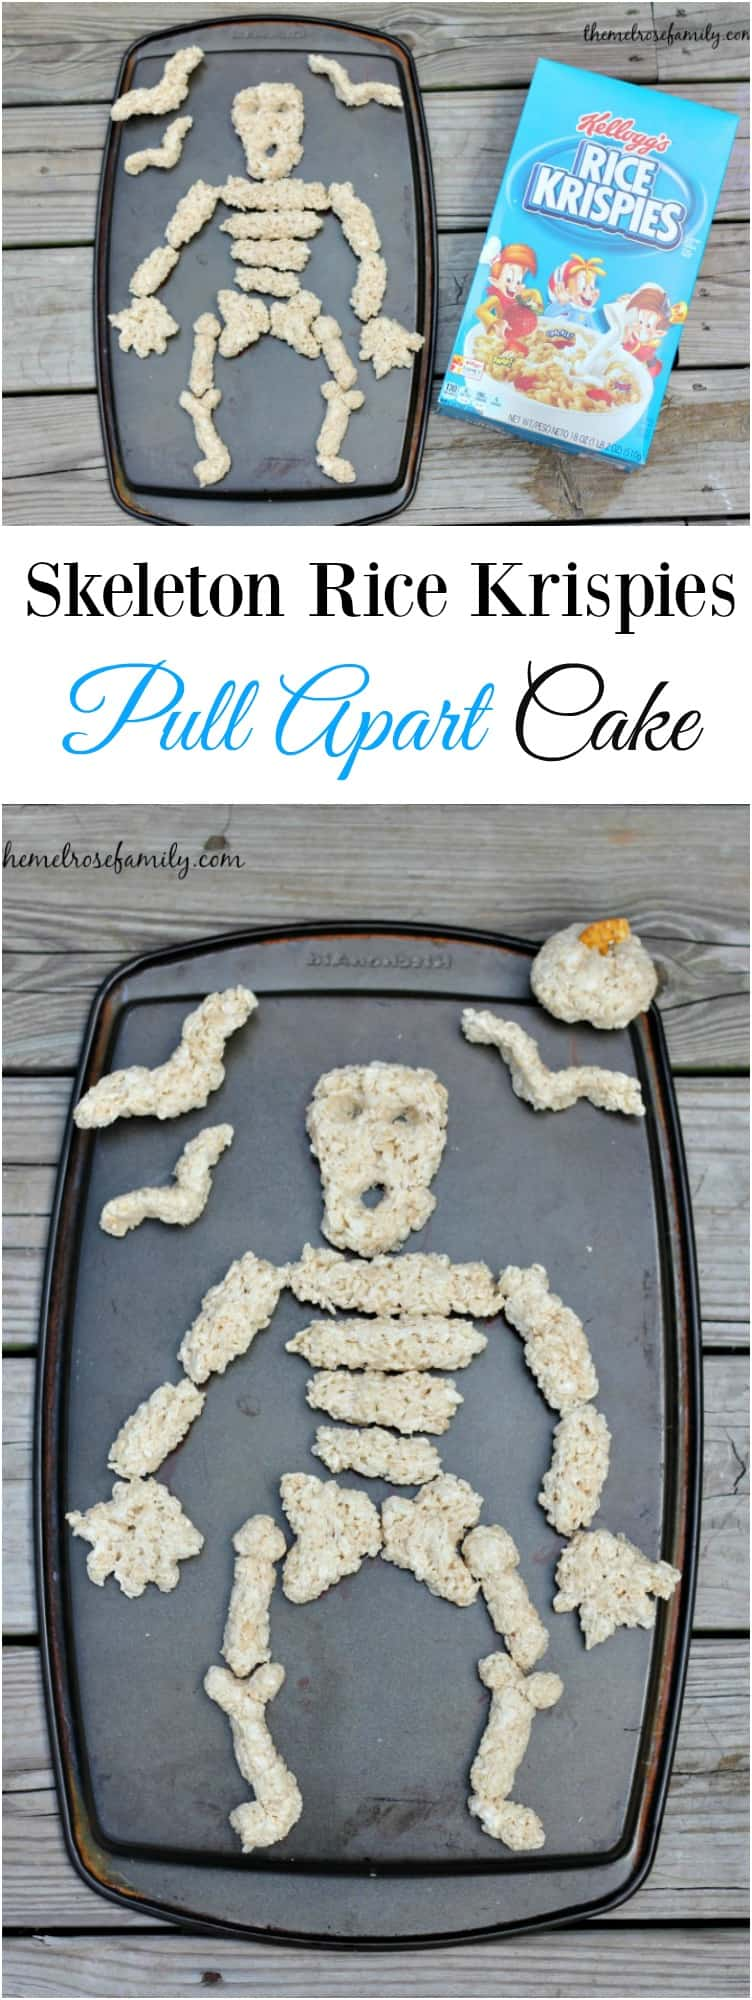 Looking for something easy and unique to make this Halloween? Our Skeleton Rice Krispies Pull Apart Cake is done in 15 minutes!